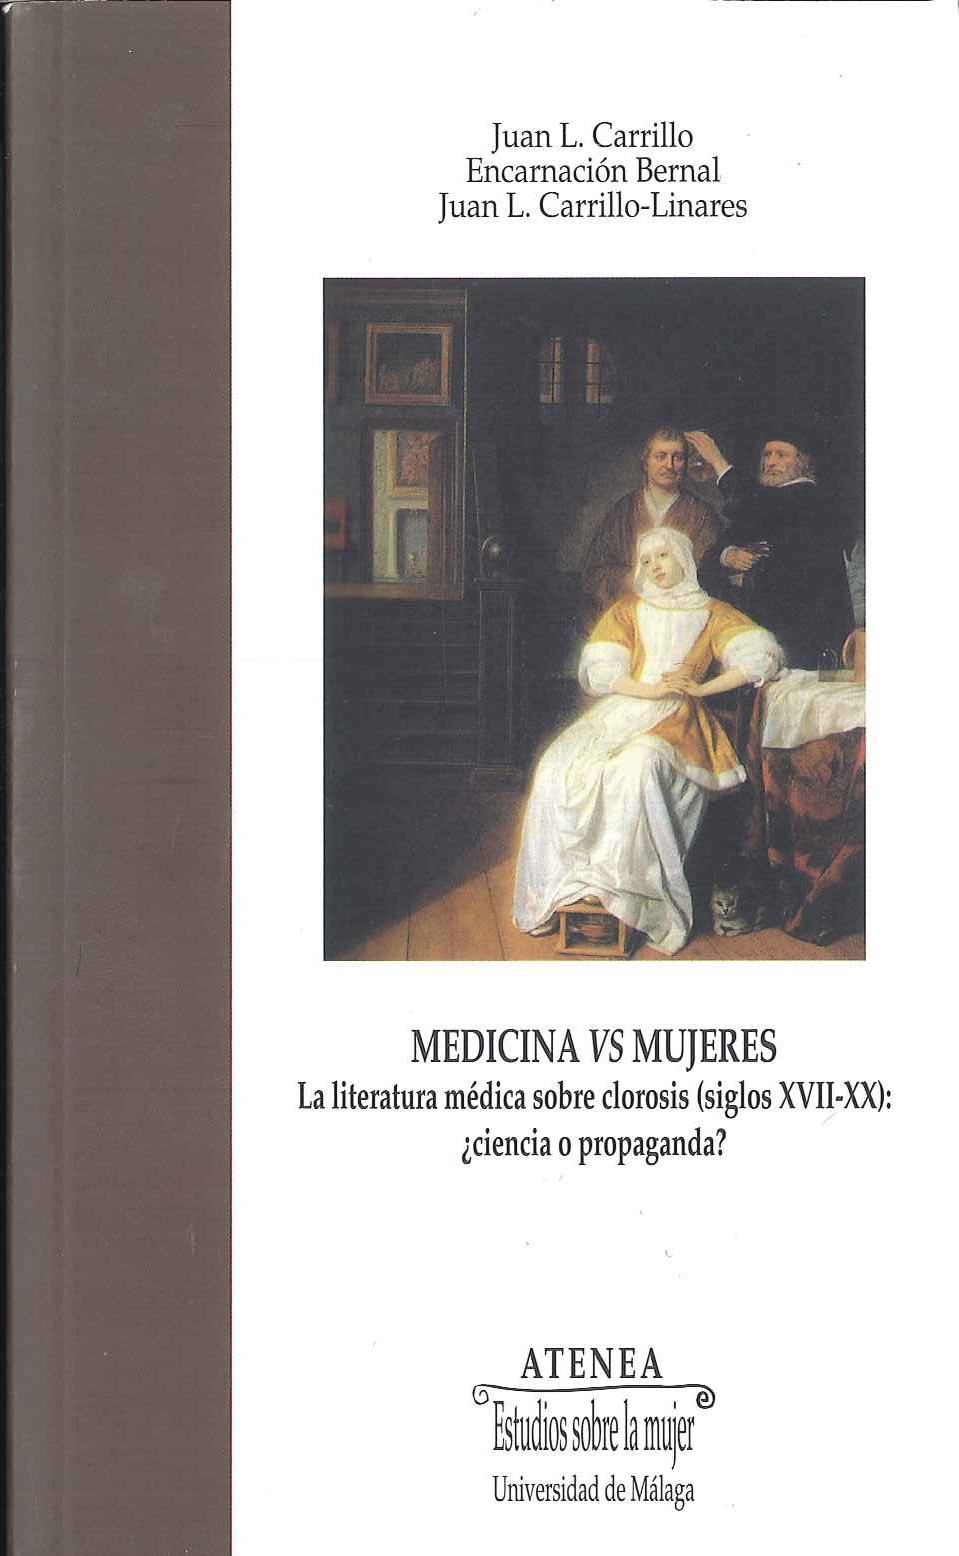 Carrillo y Bernal medicina vs mujeres